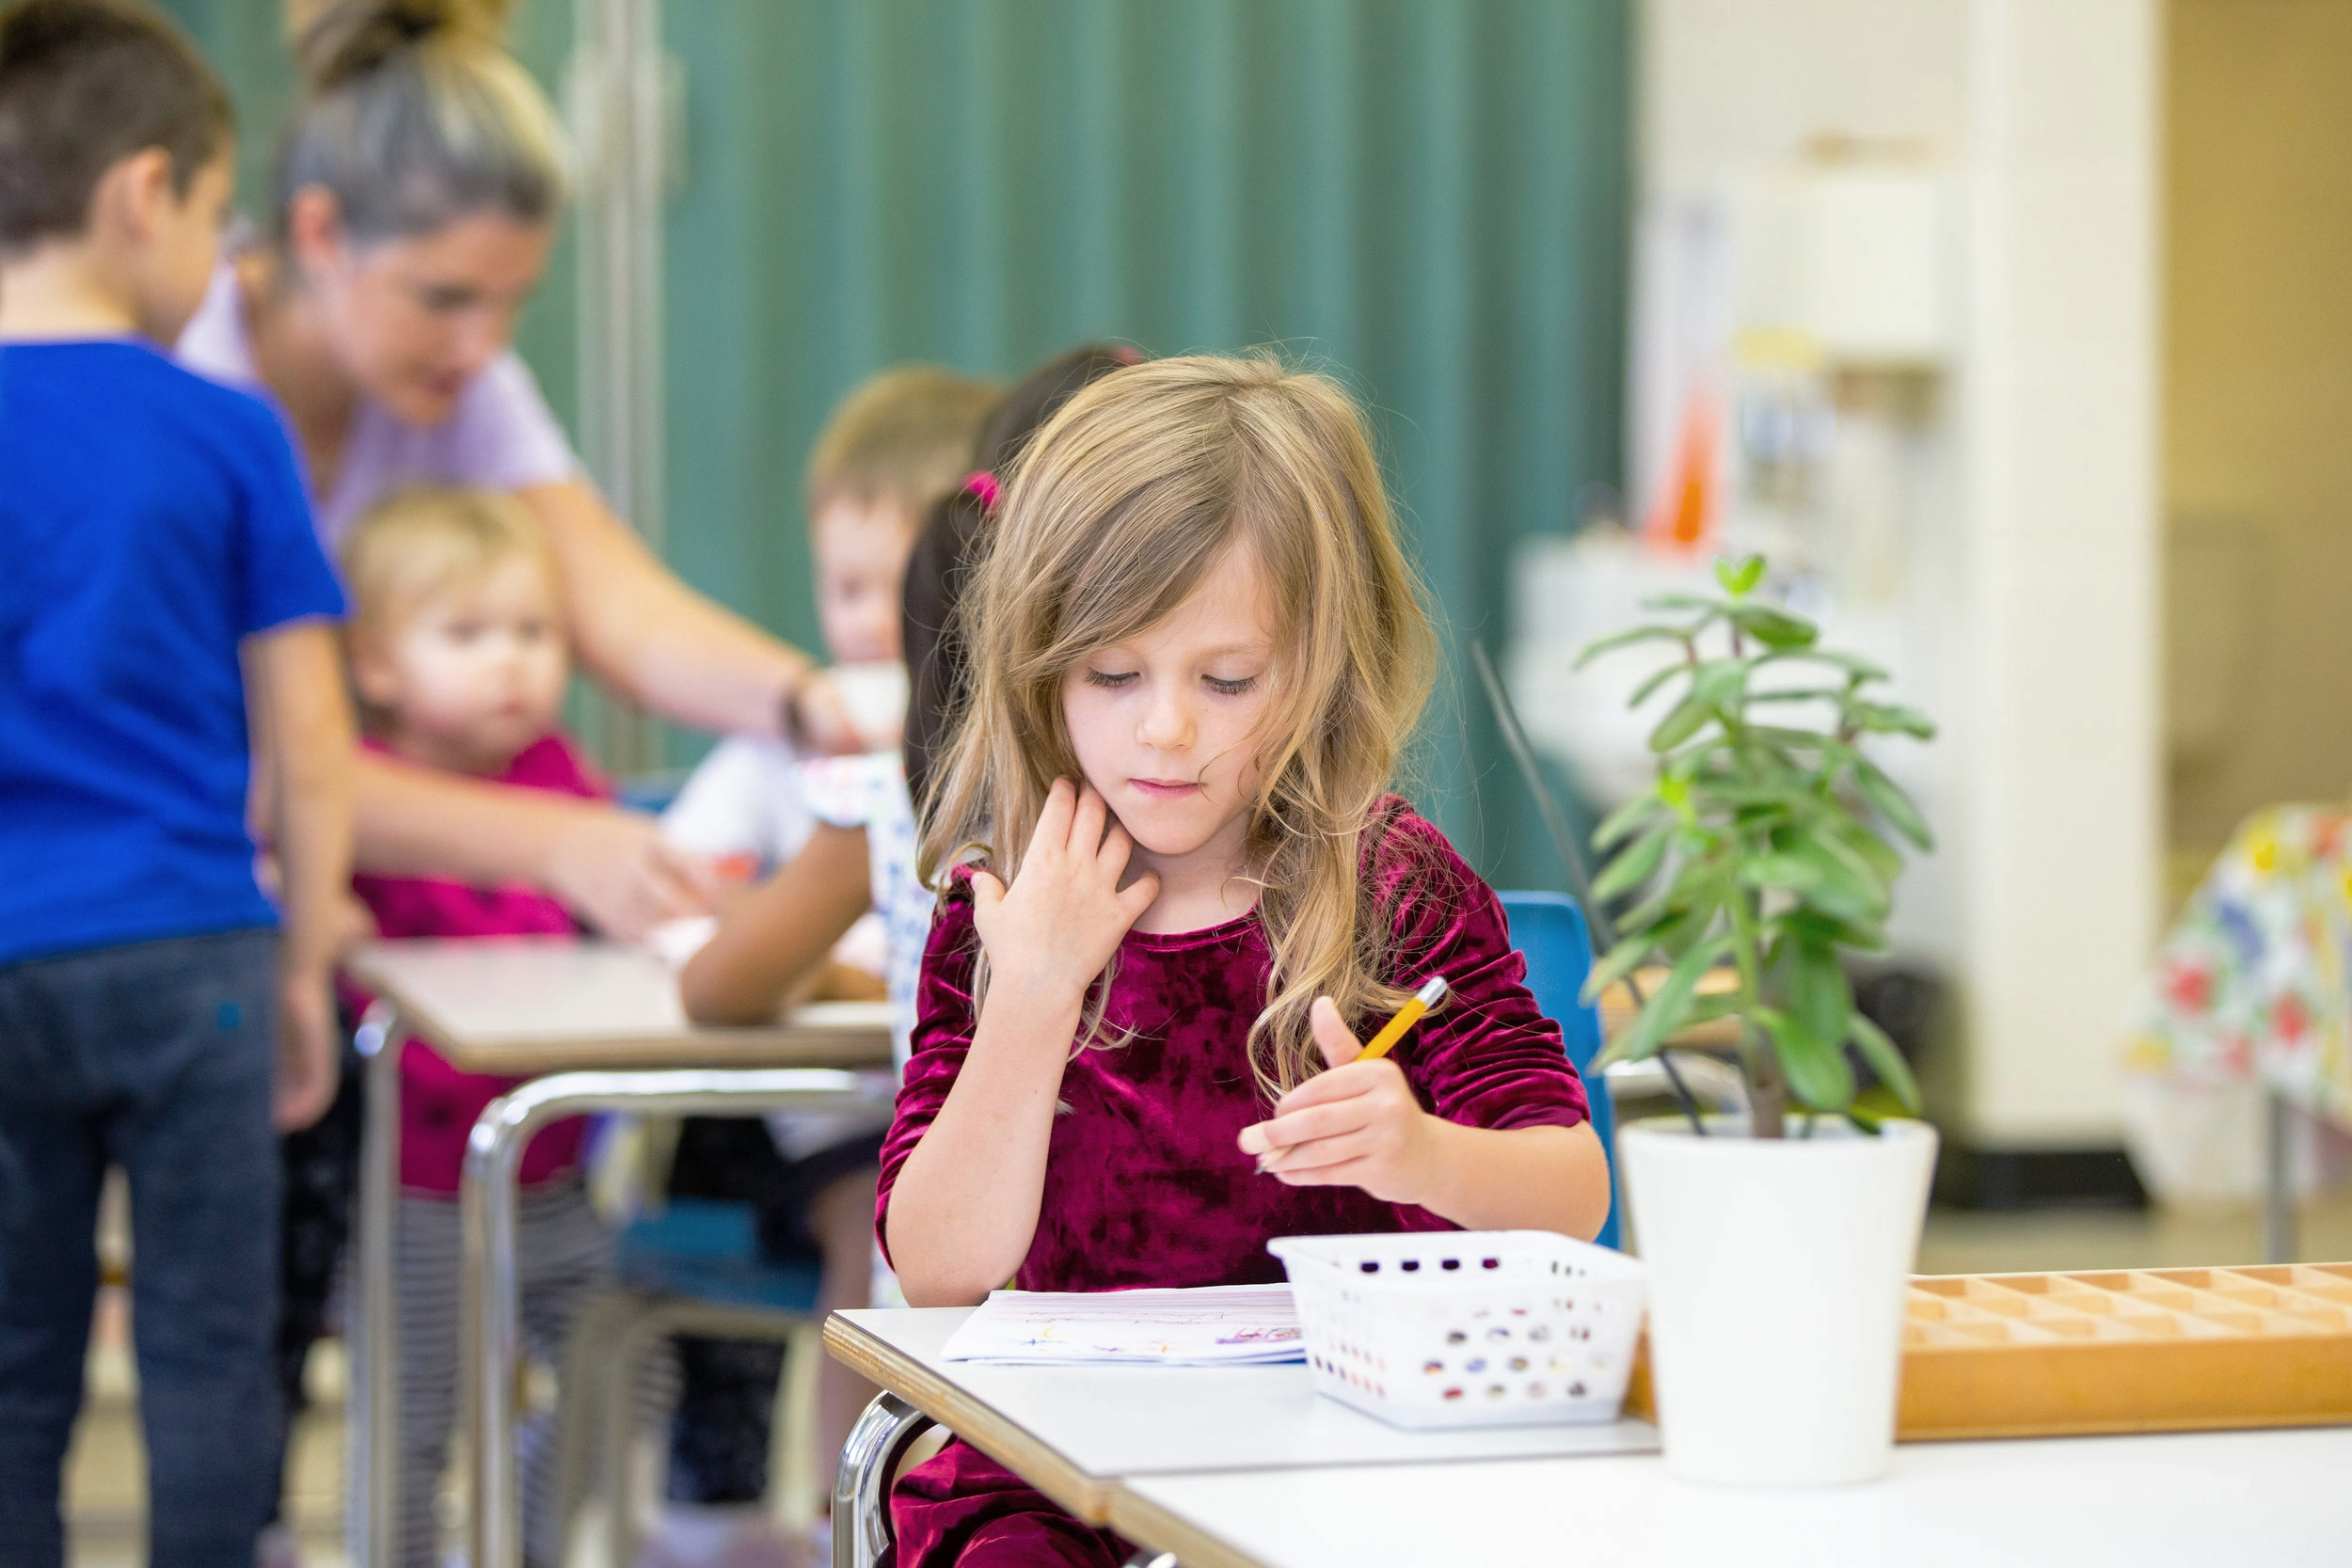 """""""Education of even a small child does not aim at preparing him for school, but for life."""" - - Maria Montessori"""